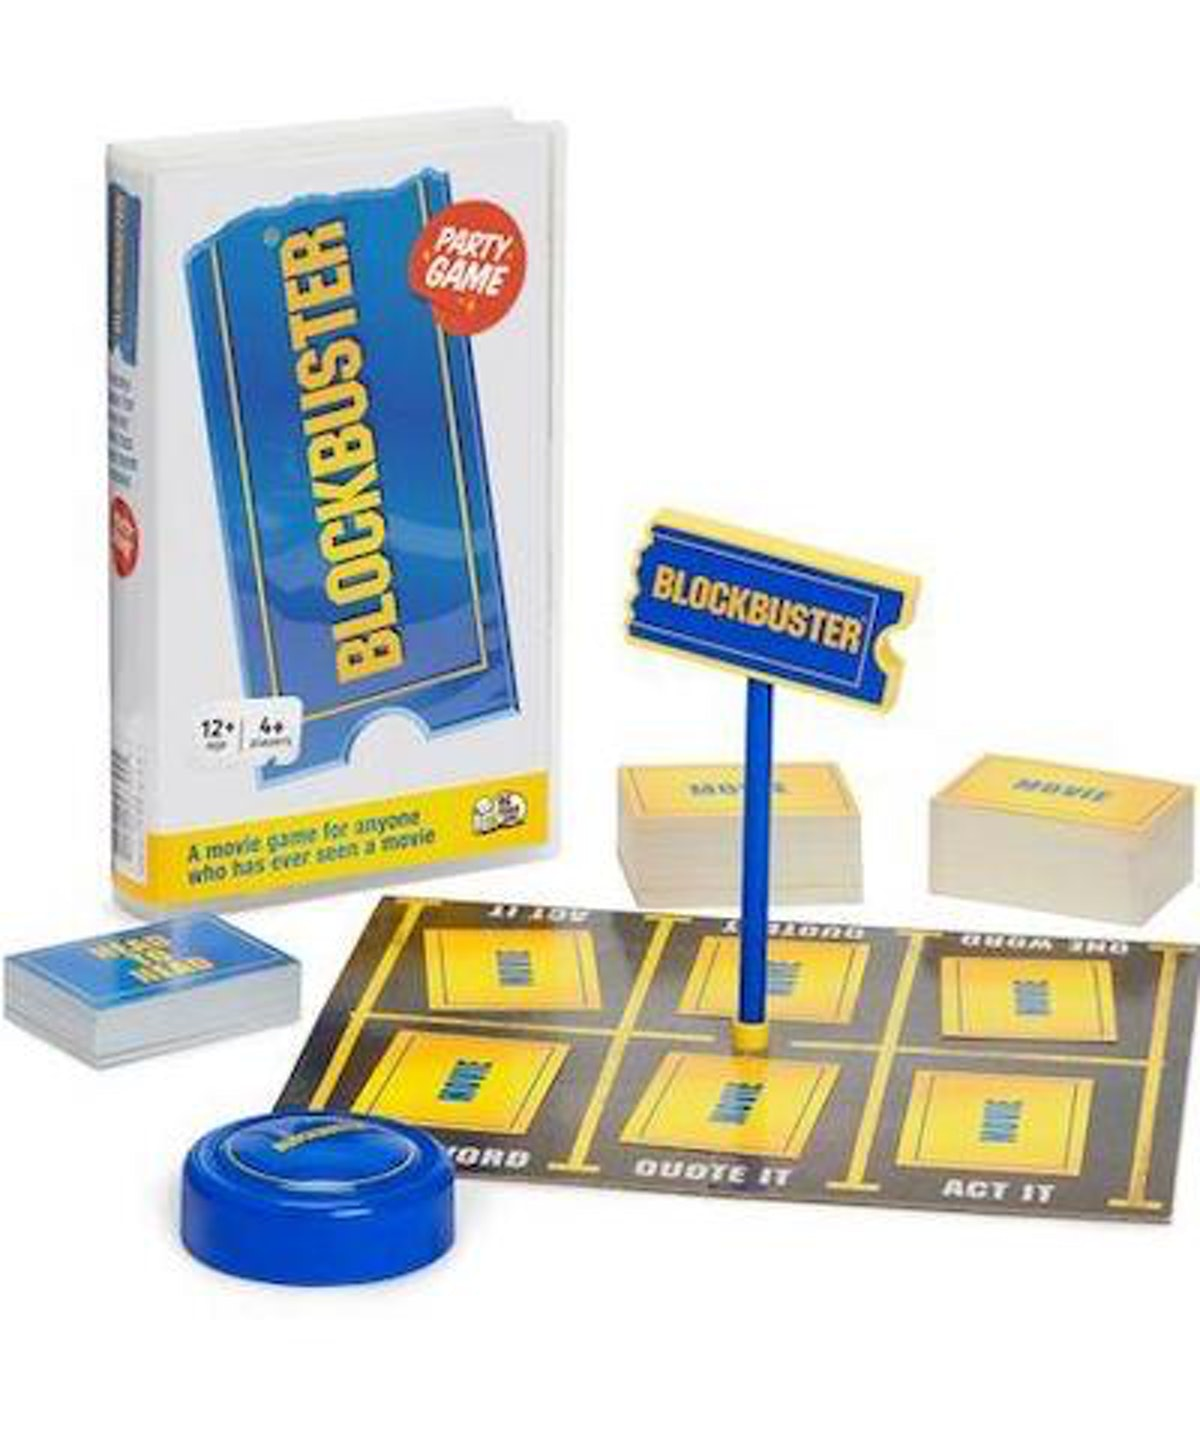 The Blockbuster Party Game